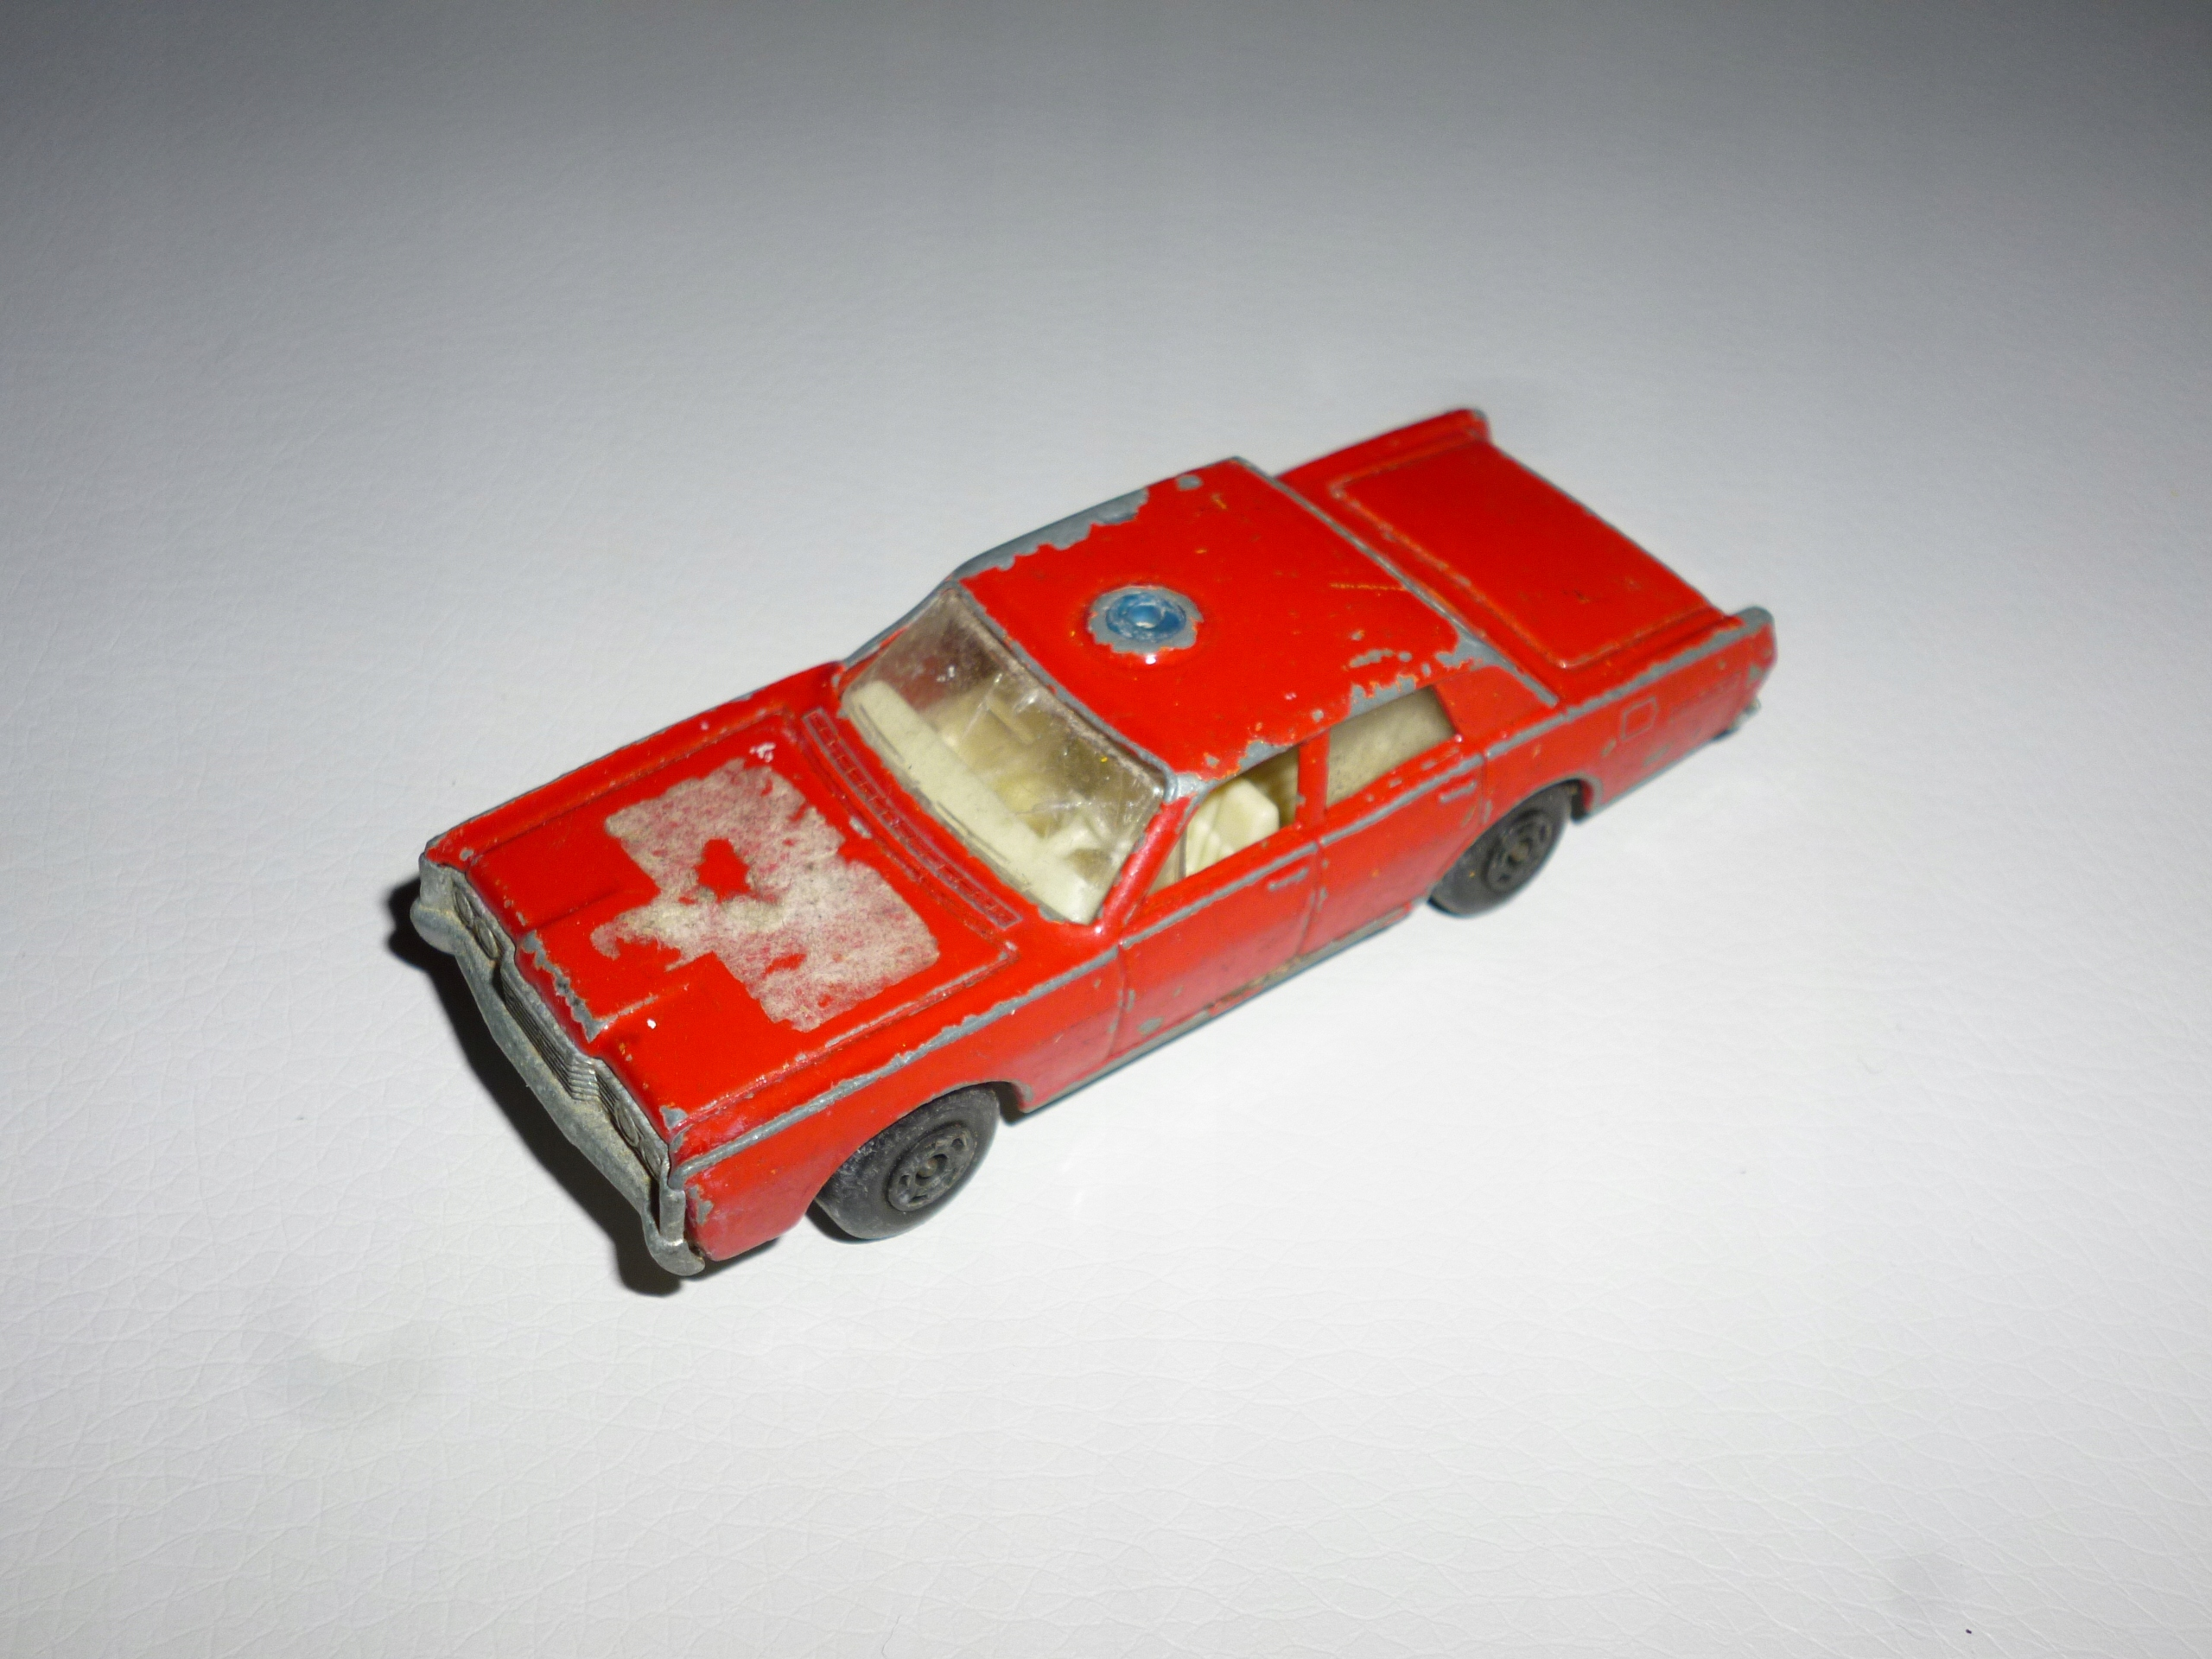 Mercury Fire Matchbox model resorak autko